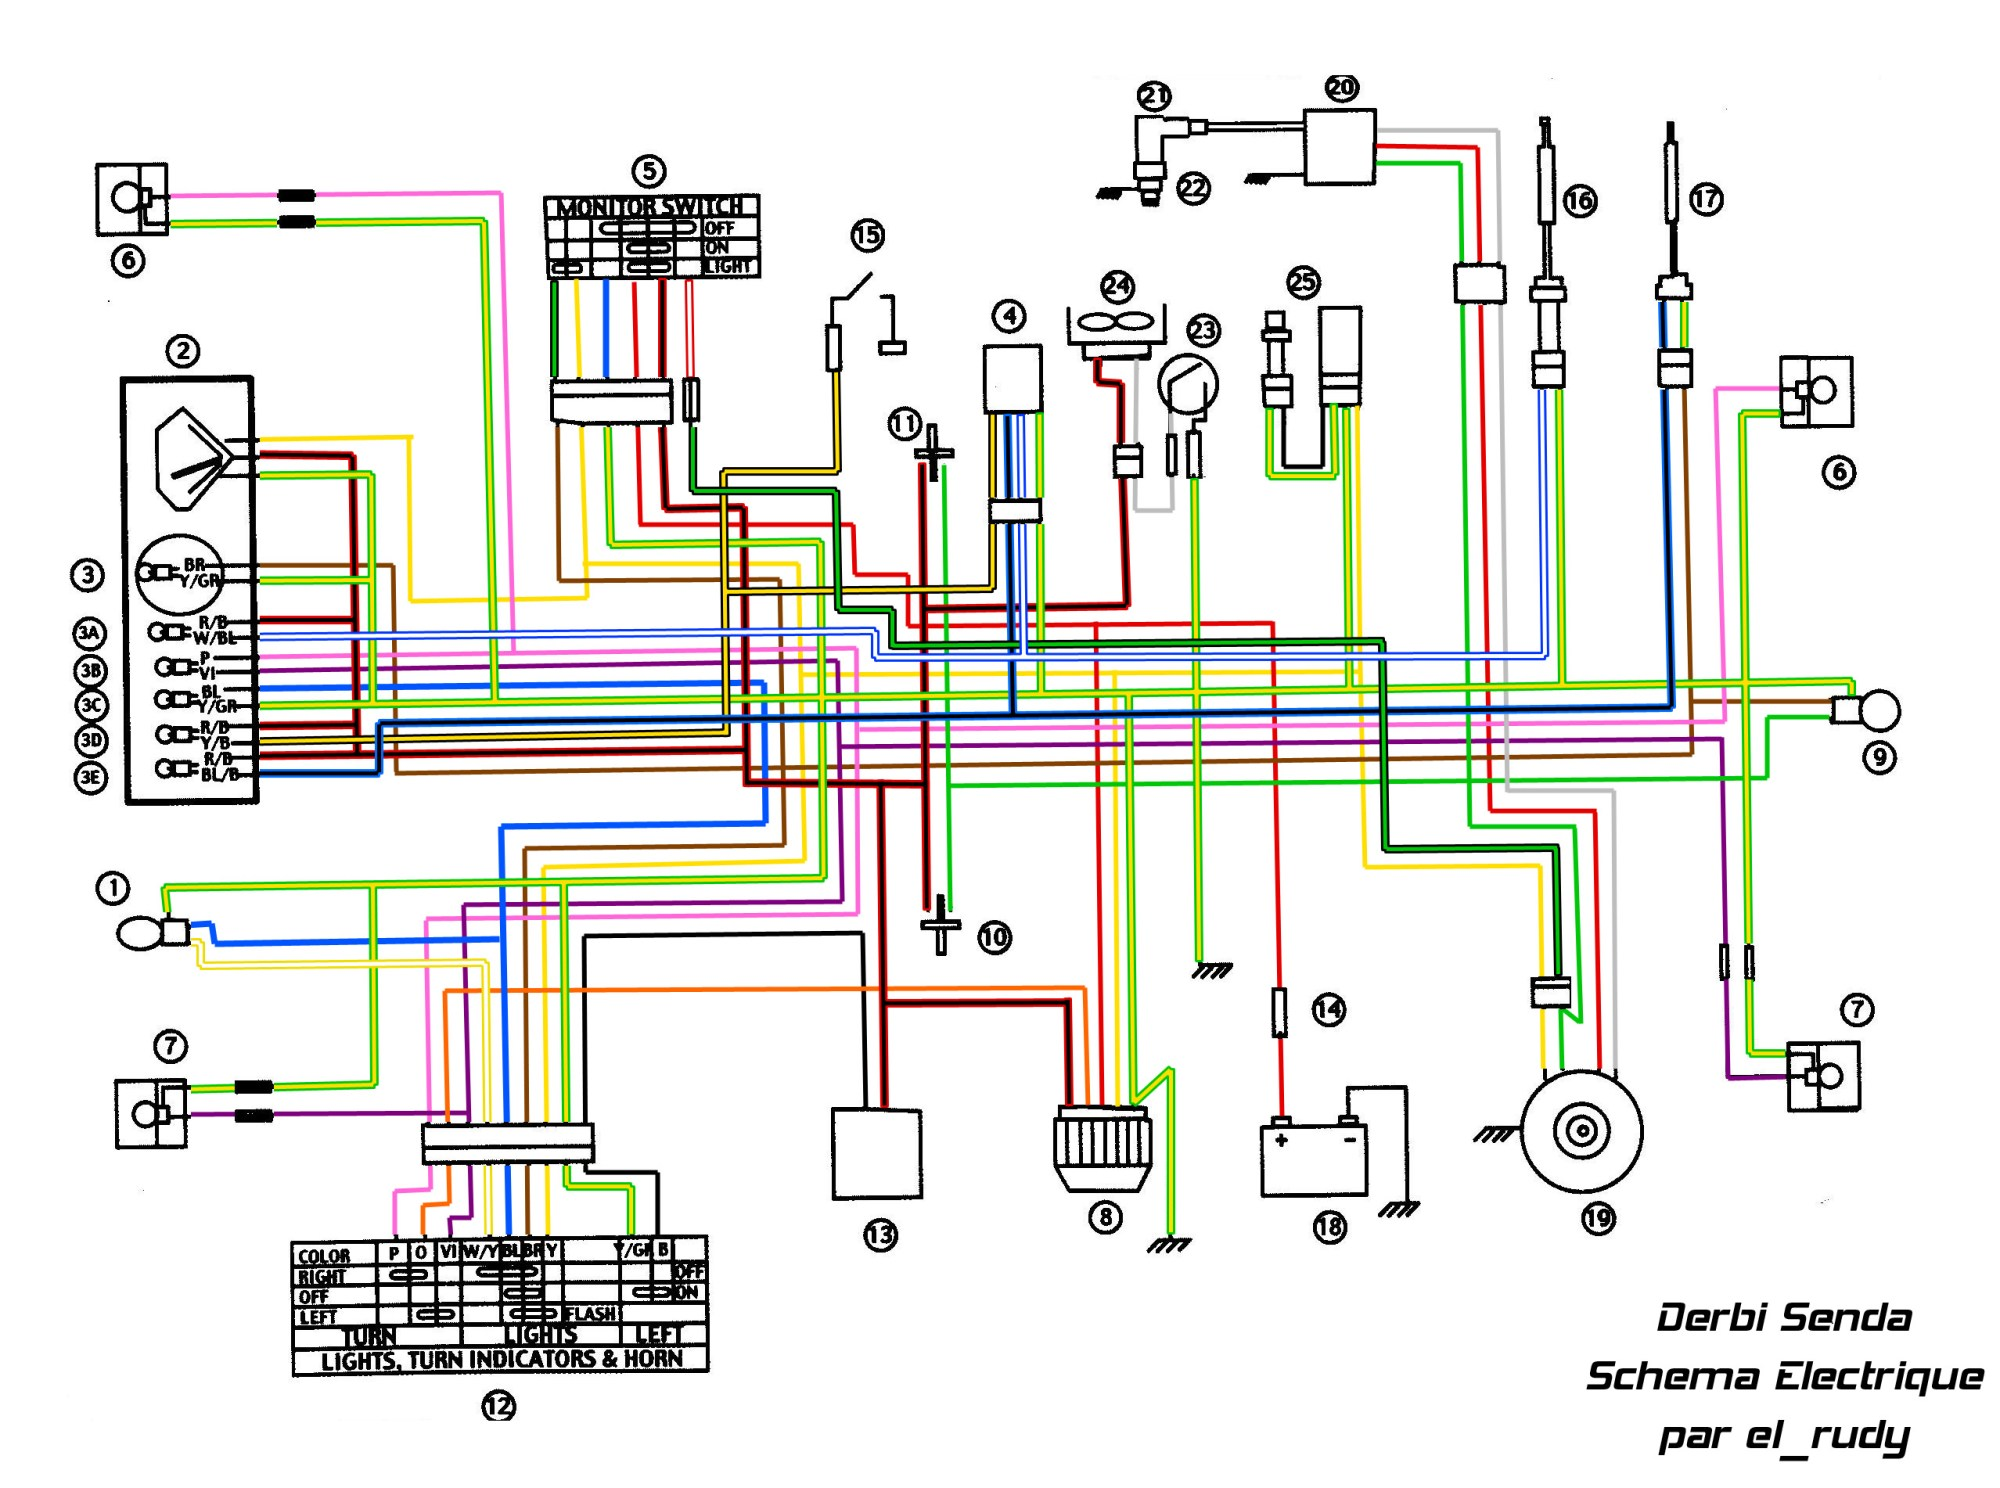 hight resolution of  8836 schemas electrique de 50 e0 1086 ih cab wiring diagram ih 574 wiring diagram wiring